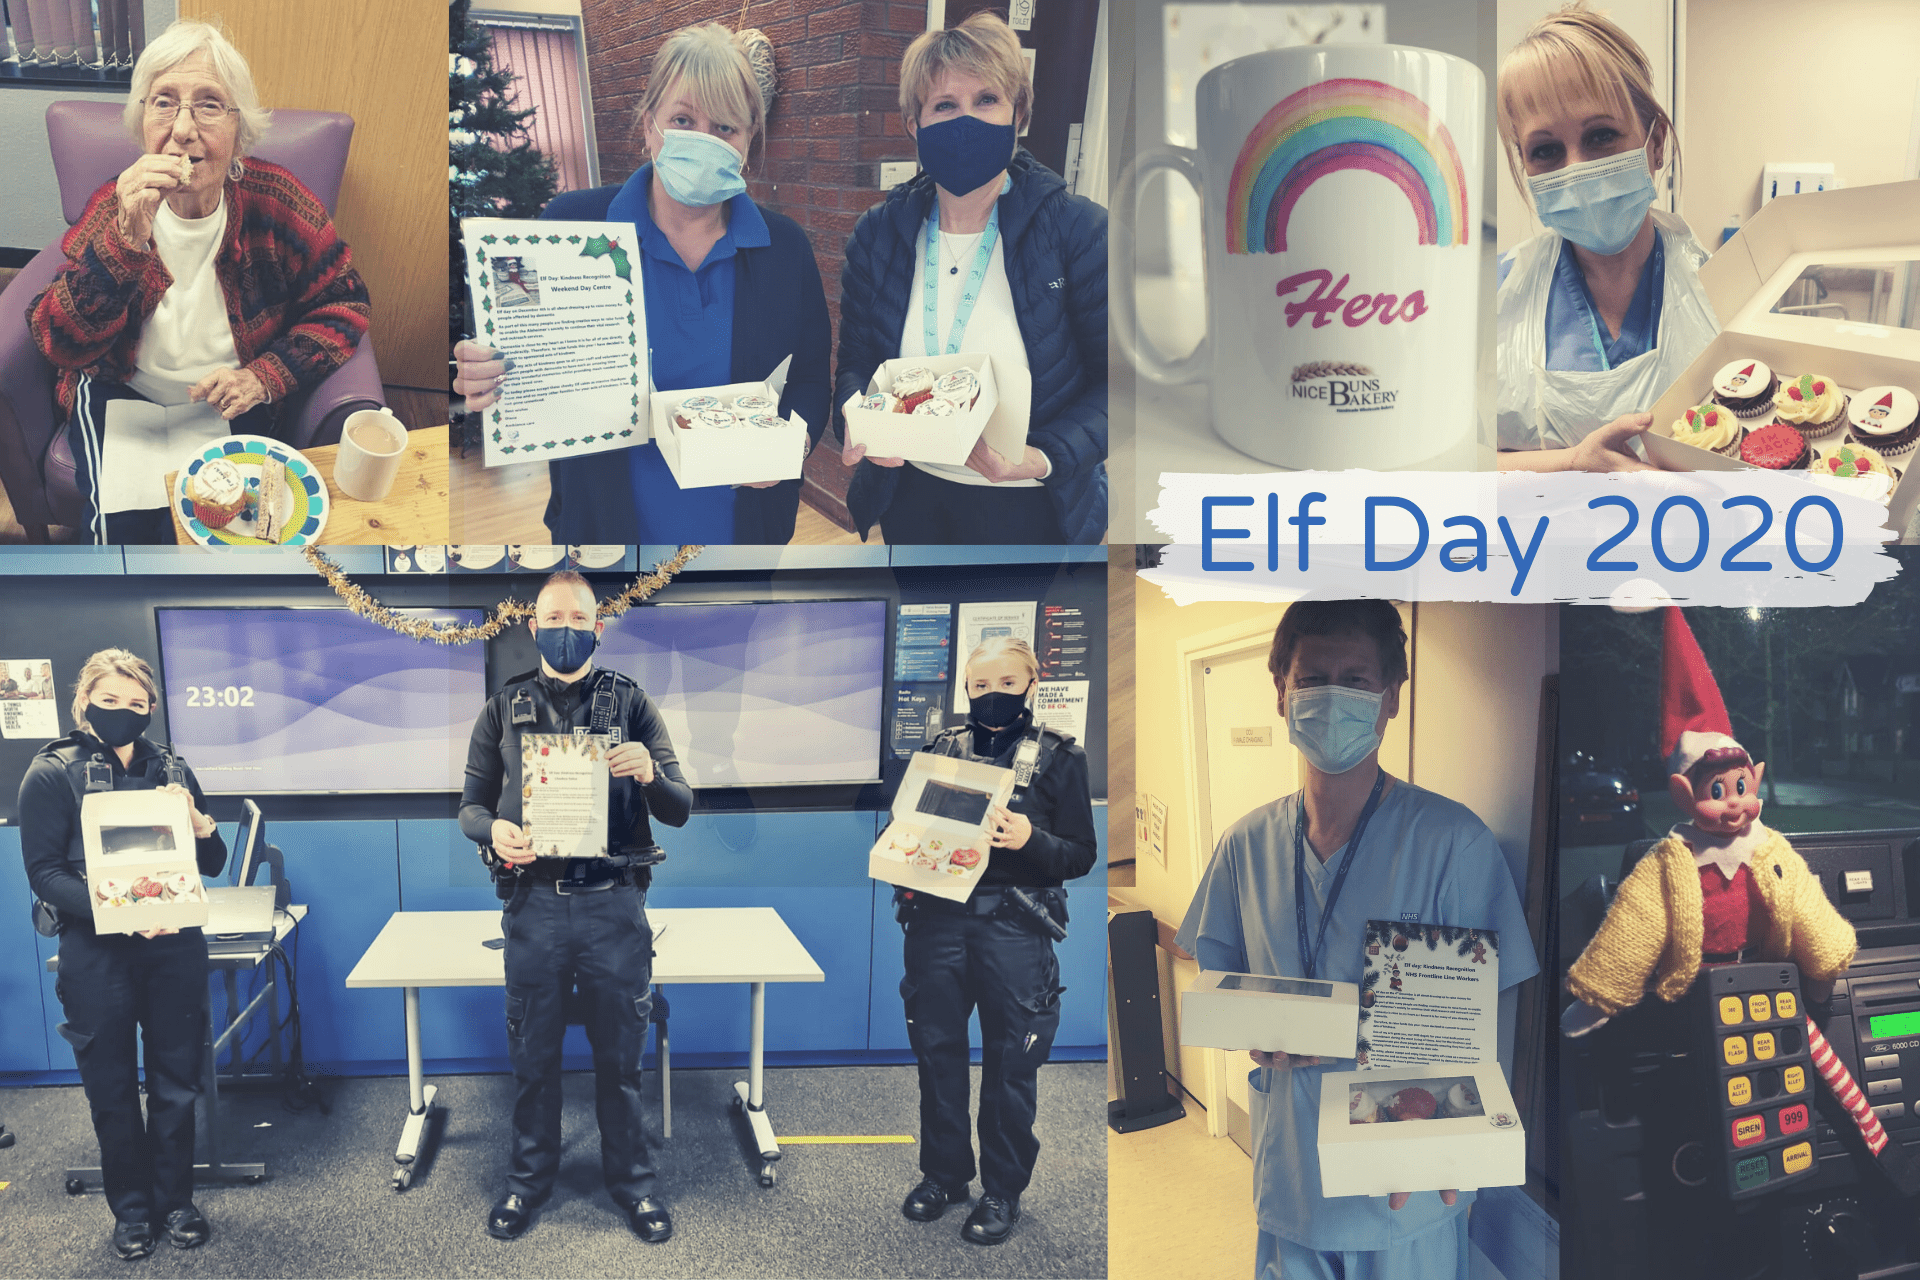 Elf Day 2020 at Ambiance Care